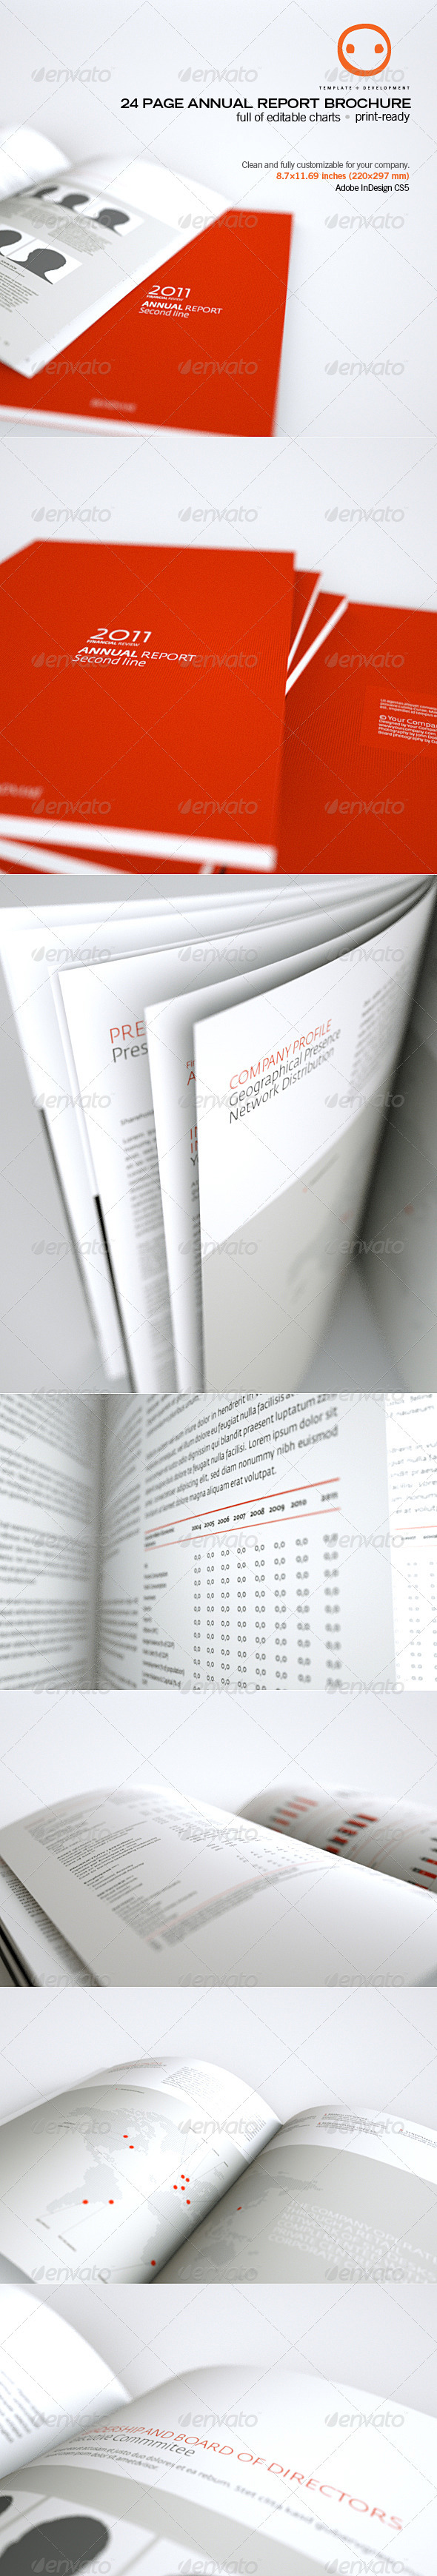 24 Page Annual Report Brochure - Informational Brochures